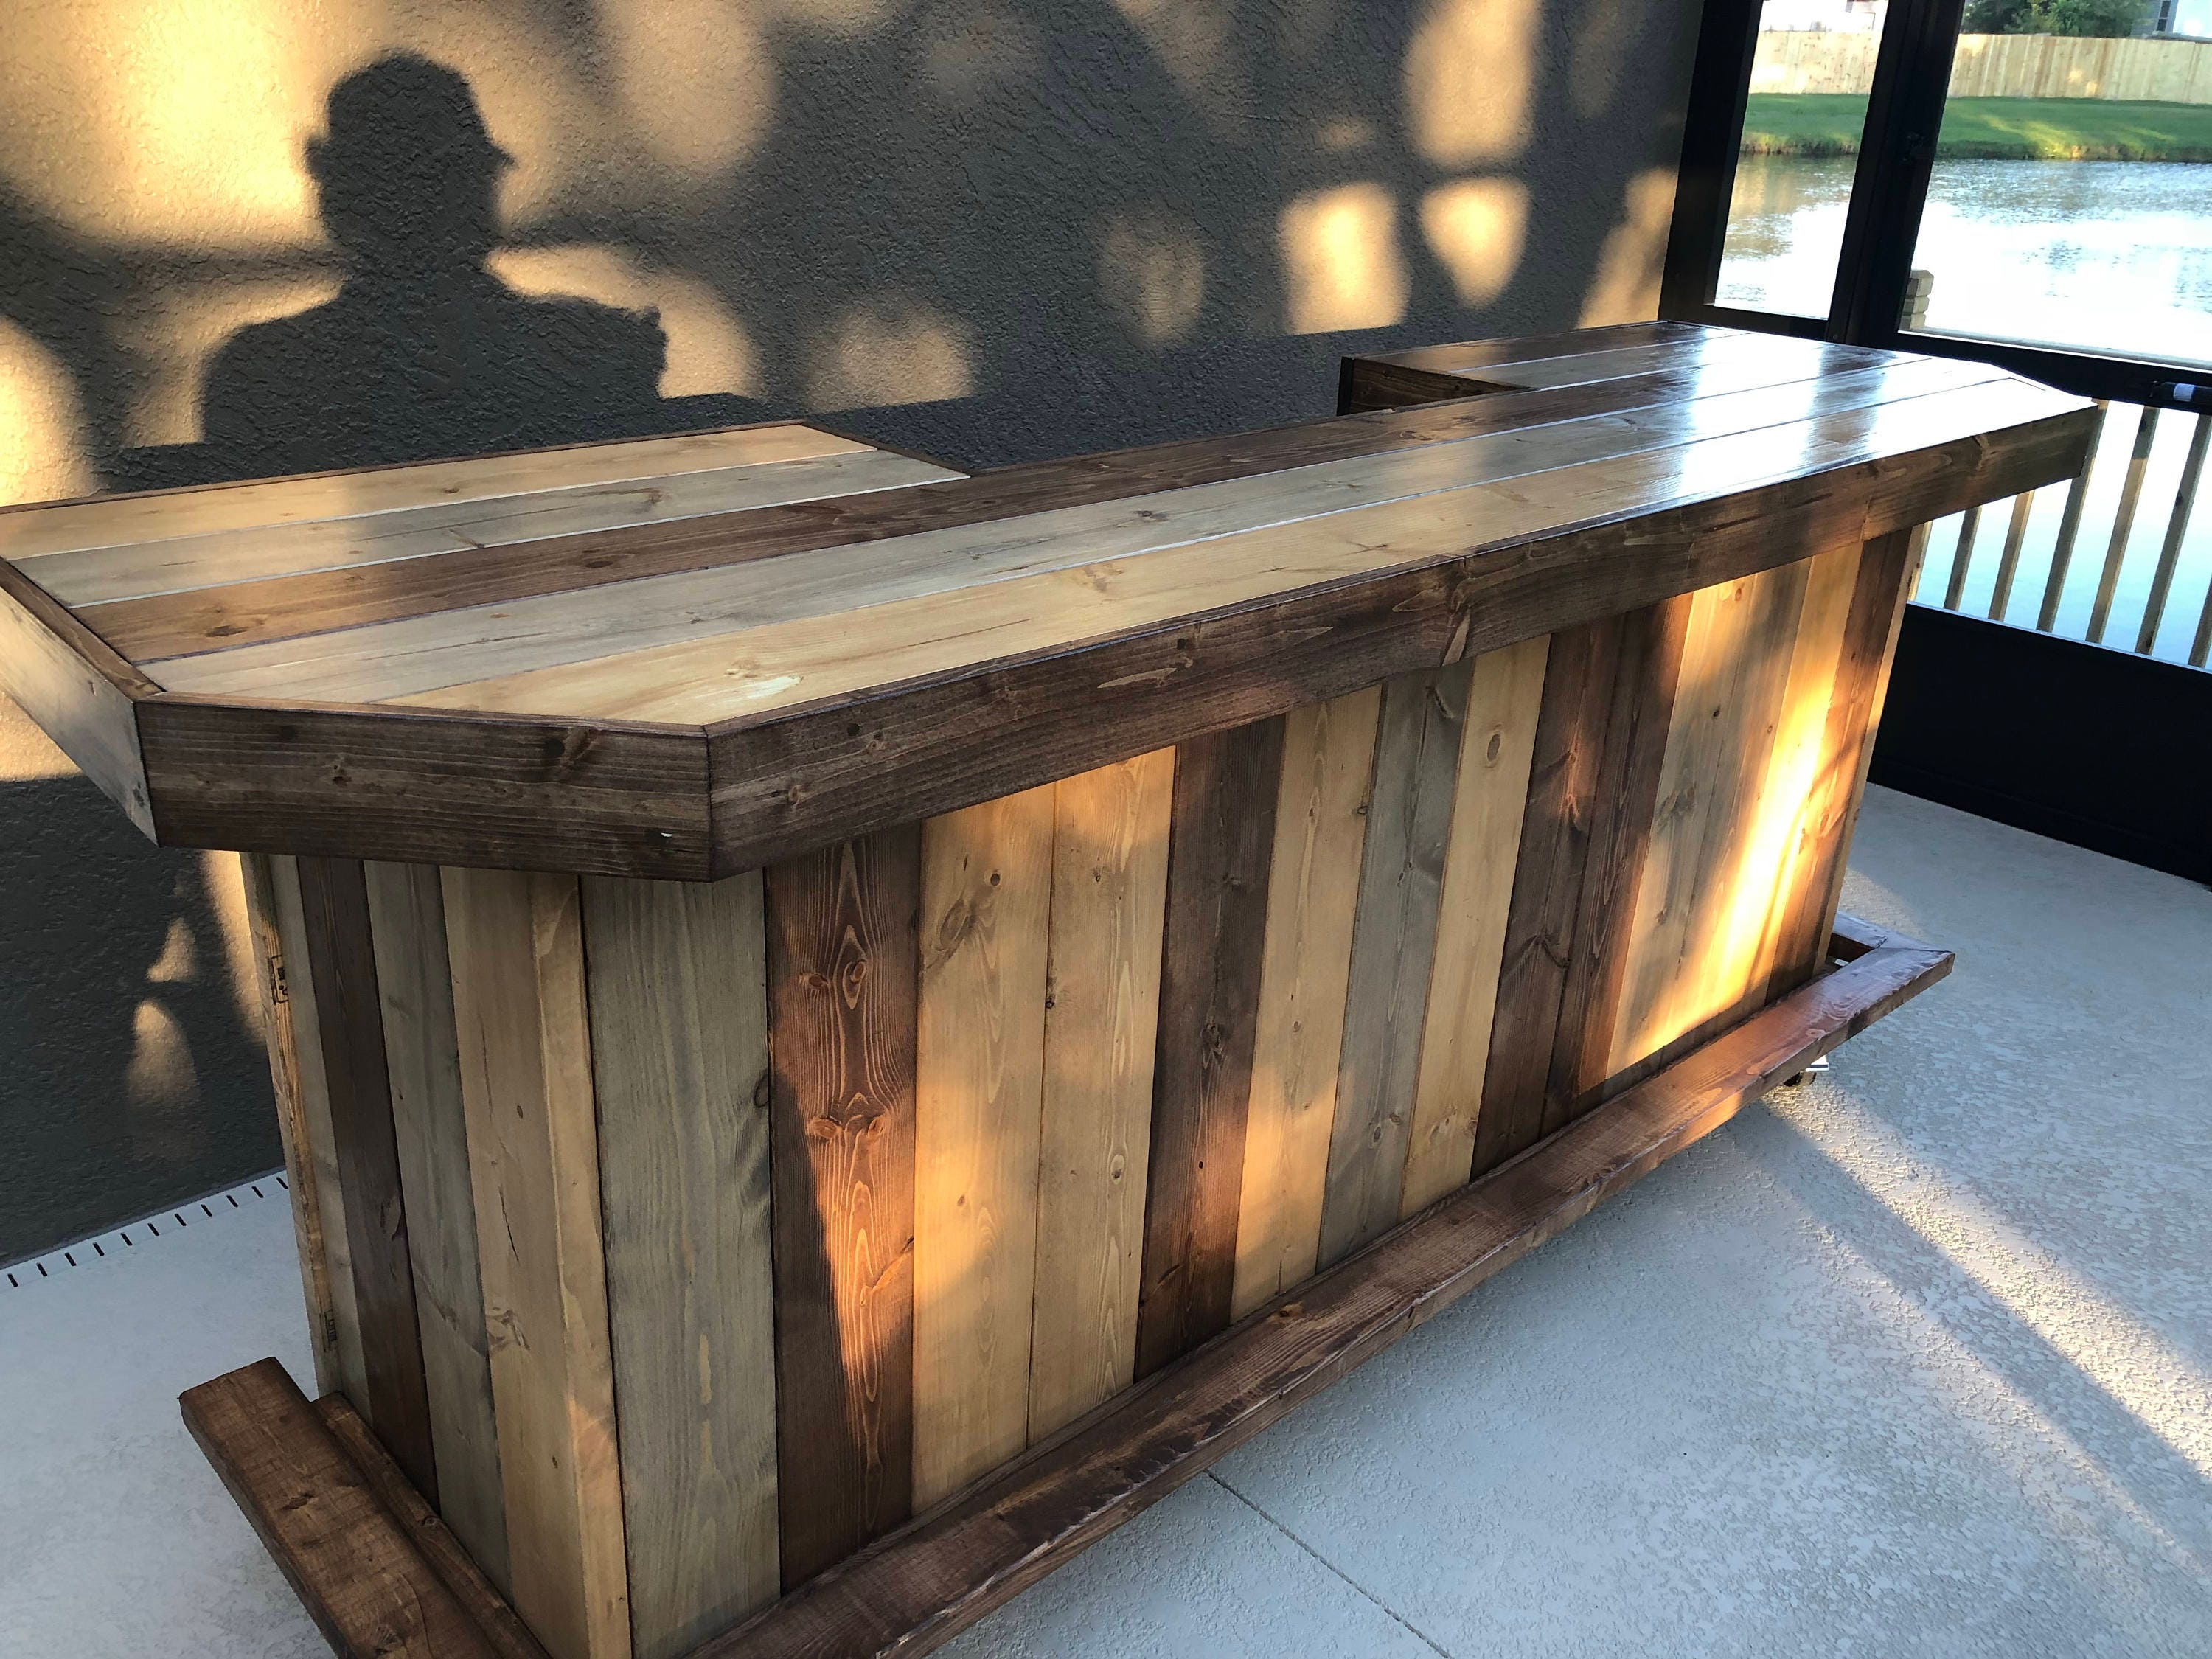 The Plank Top Maggie   8u0027 Rustic Finished Barnwood Or Pallet Style Bar,  Sales Counter Reception Desk